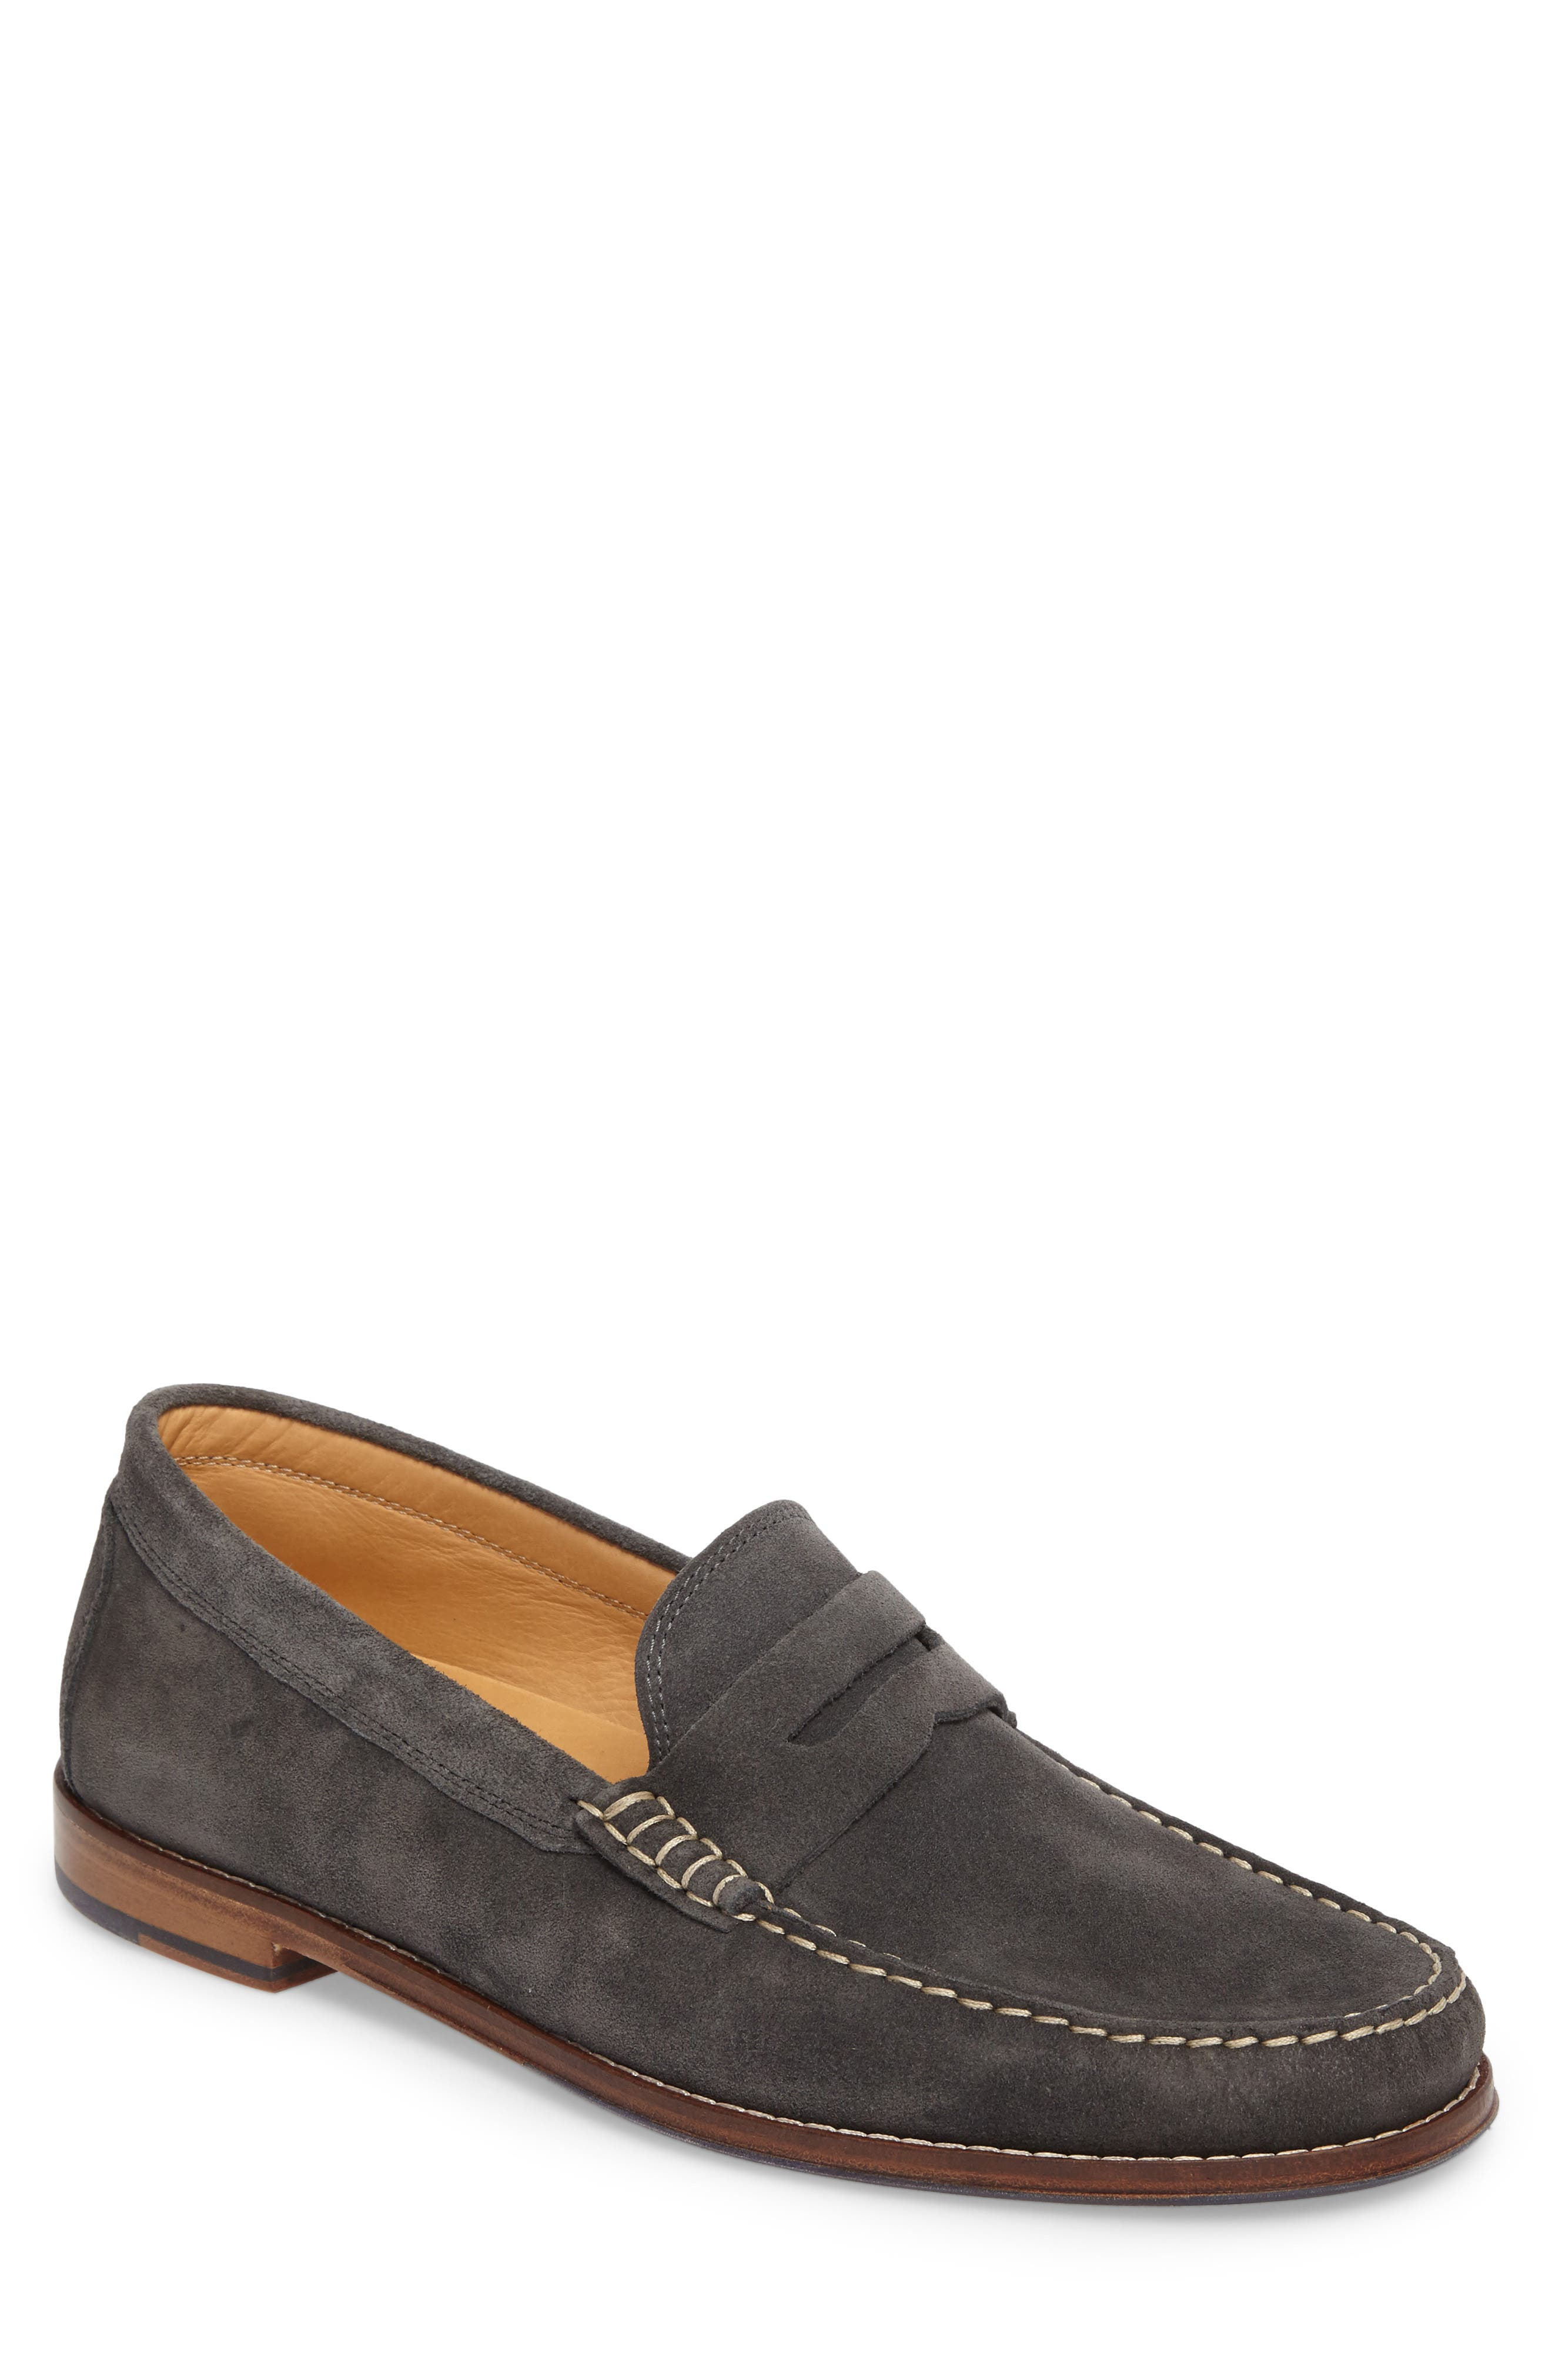 Ripley Penny Loafer,                         Main,                         color, GREY LEATHER